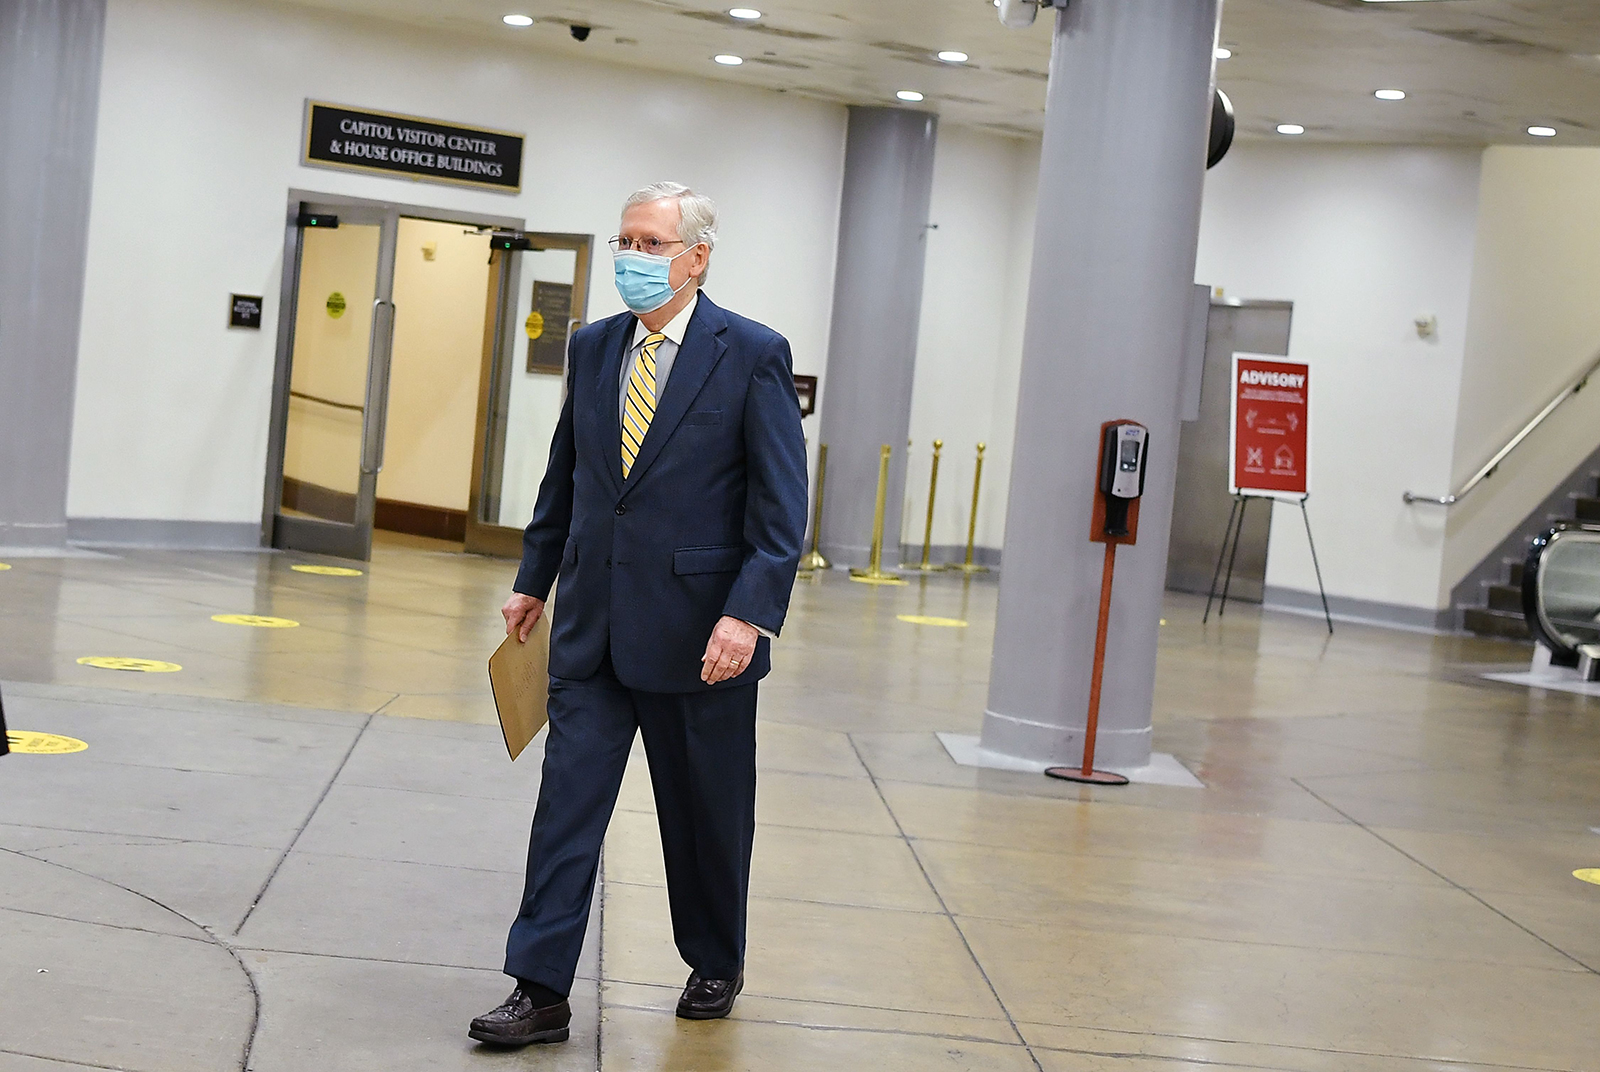 Senate Majority Leader Mitch McConnell, R-KY, waits for the subway to the Hart Senate Office building, at the US Capitol in Washington, DC on August 5.